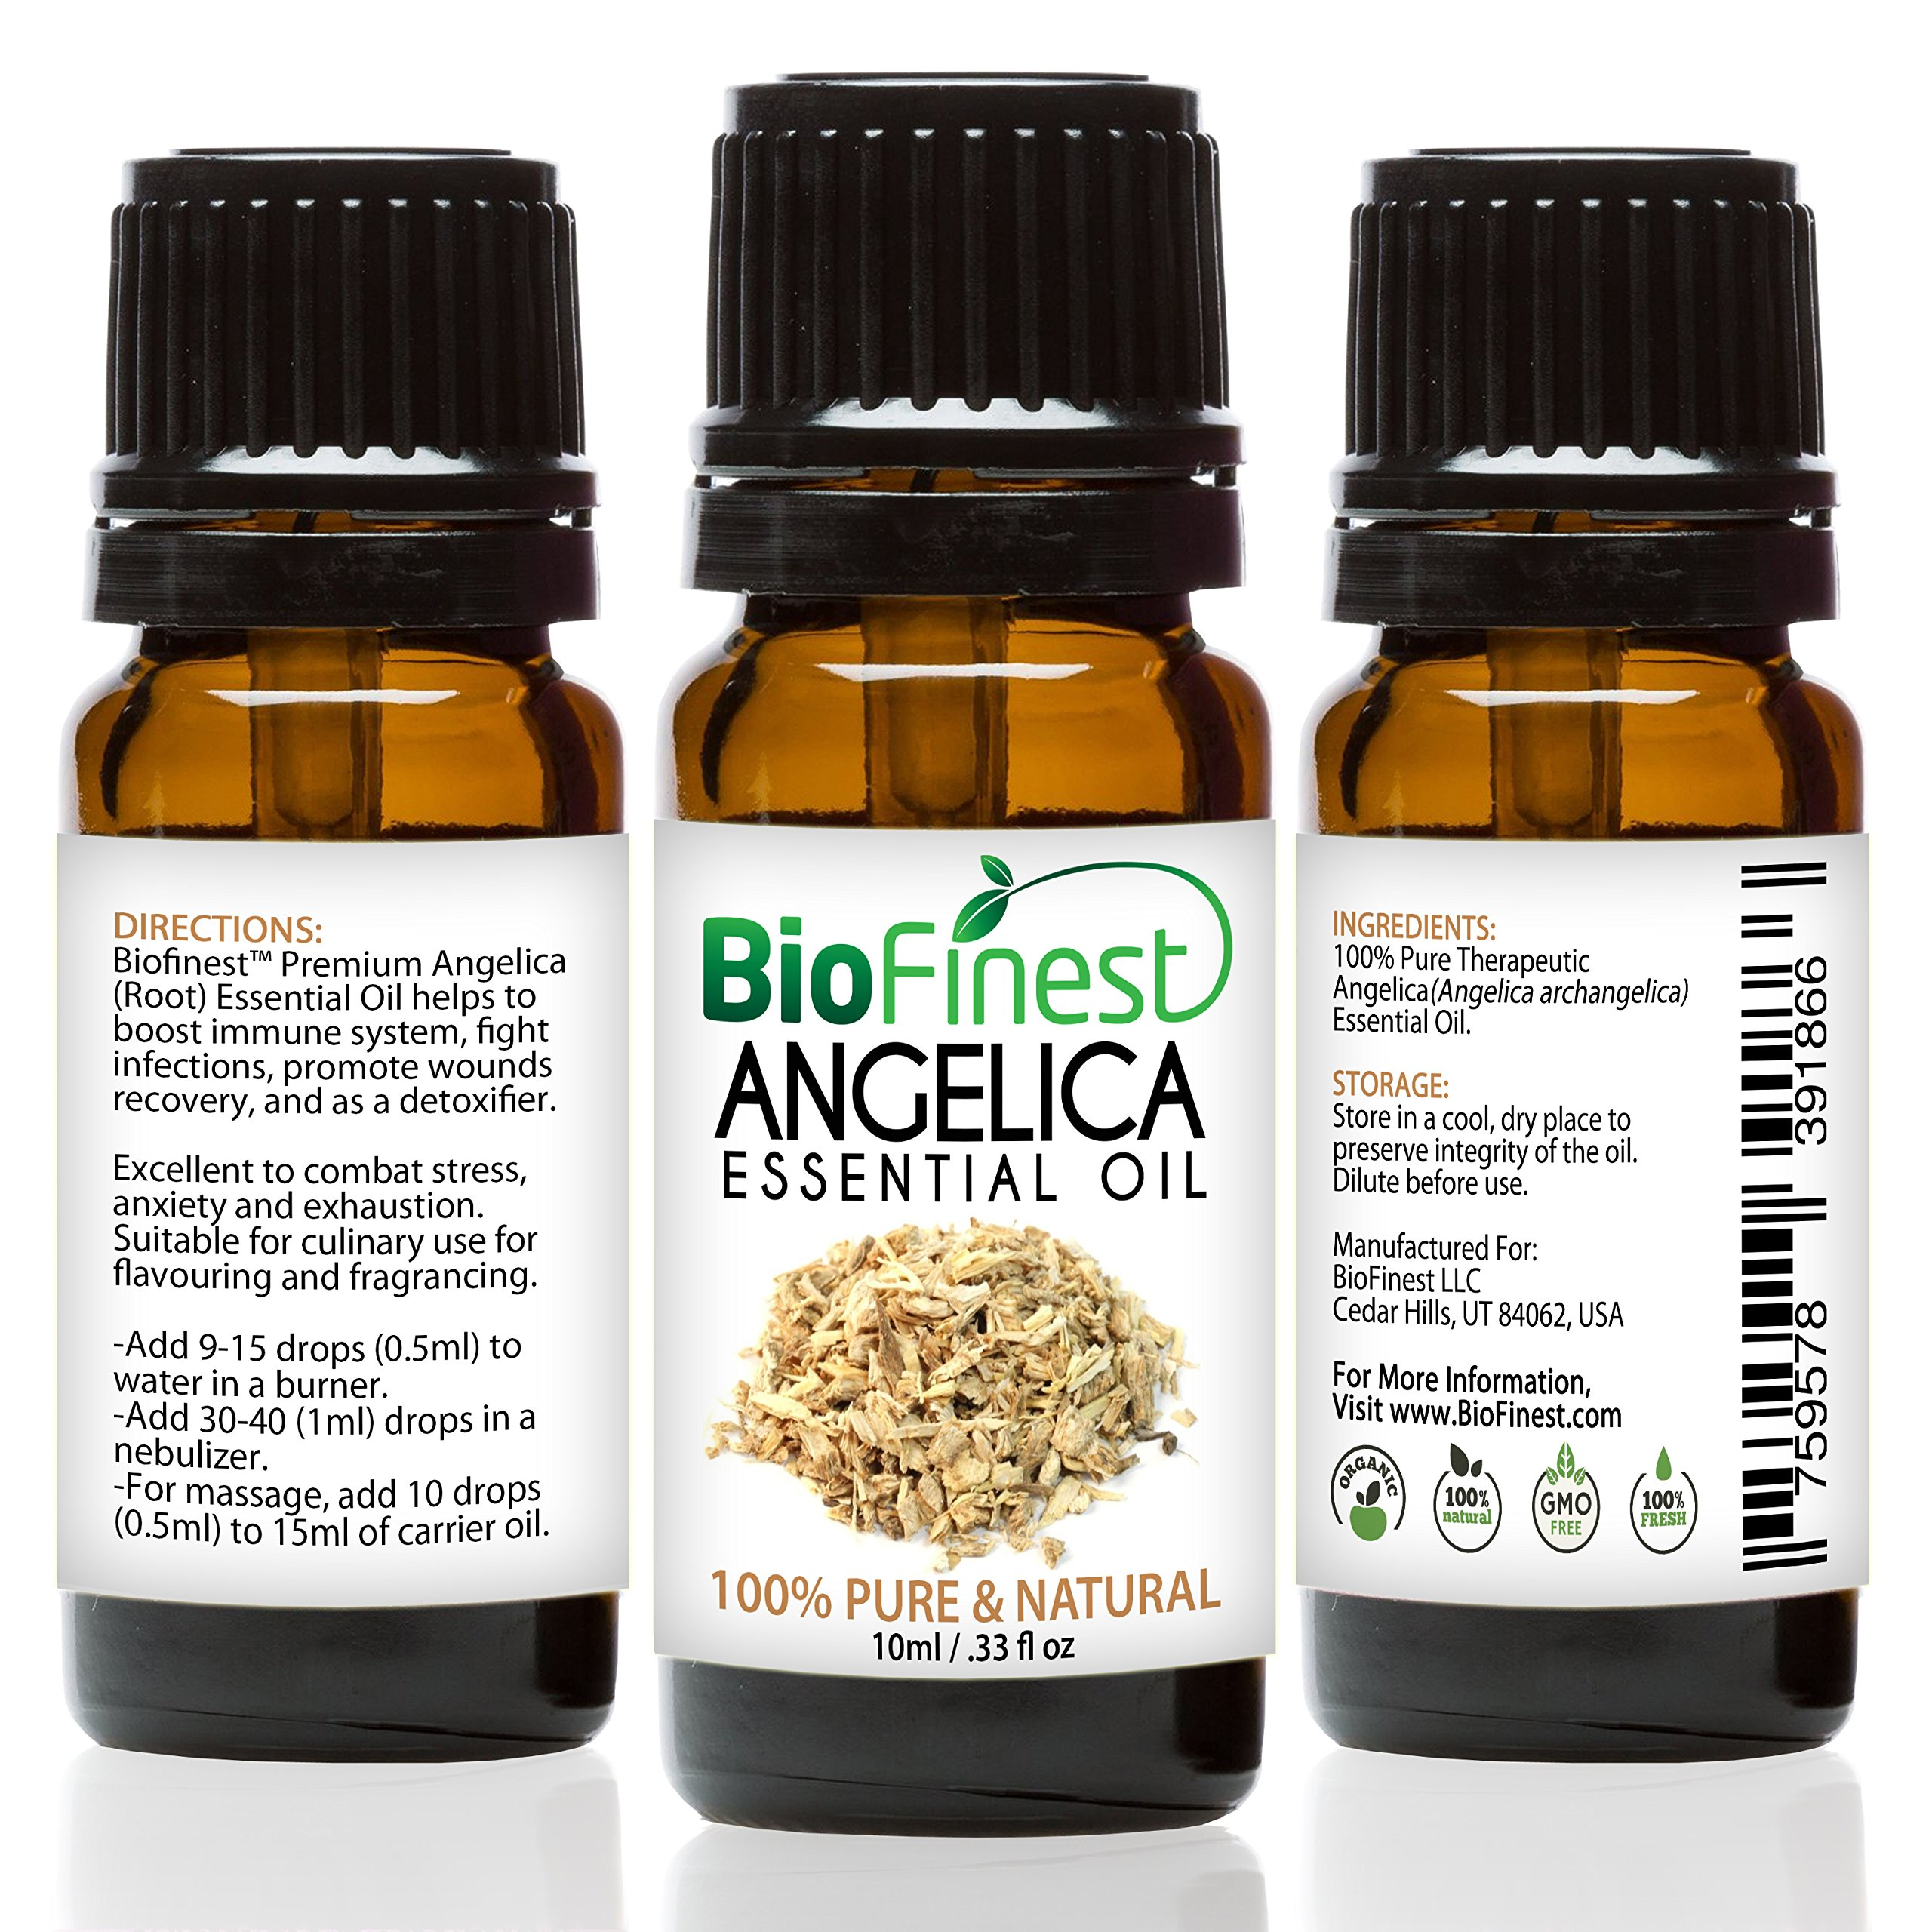 BioFinest Angelica Oil - 100% Pure Angelica Essential Oil - Boost Immune System and Strength - Premium Quality - Therapeutic Grade - Best For Aromatherapy - FREE E-Book (10ml)